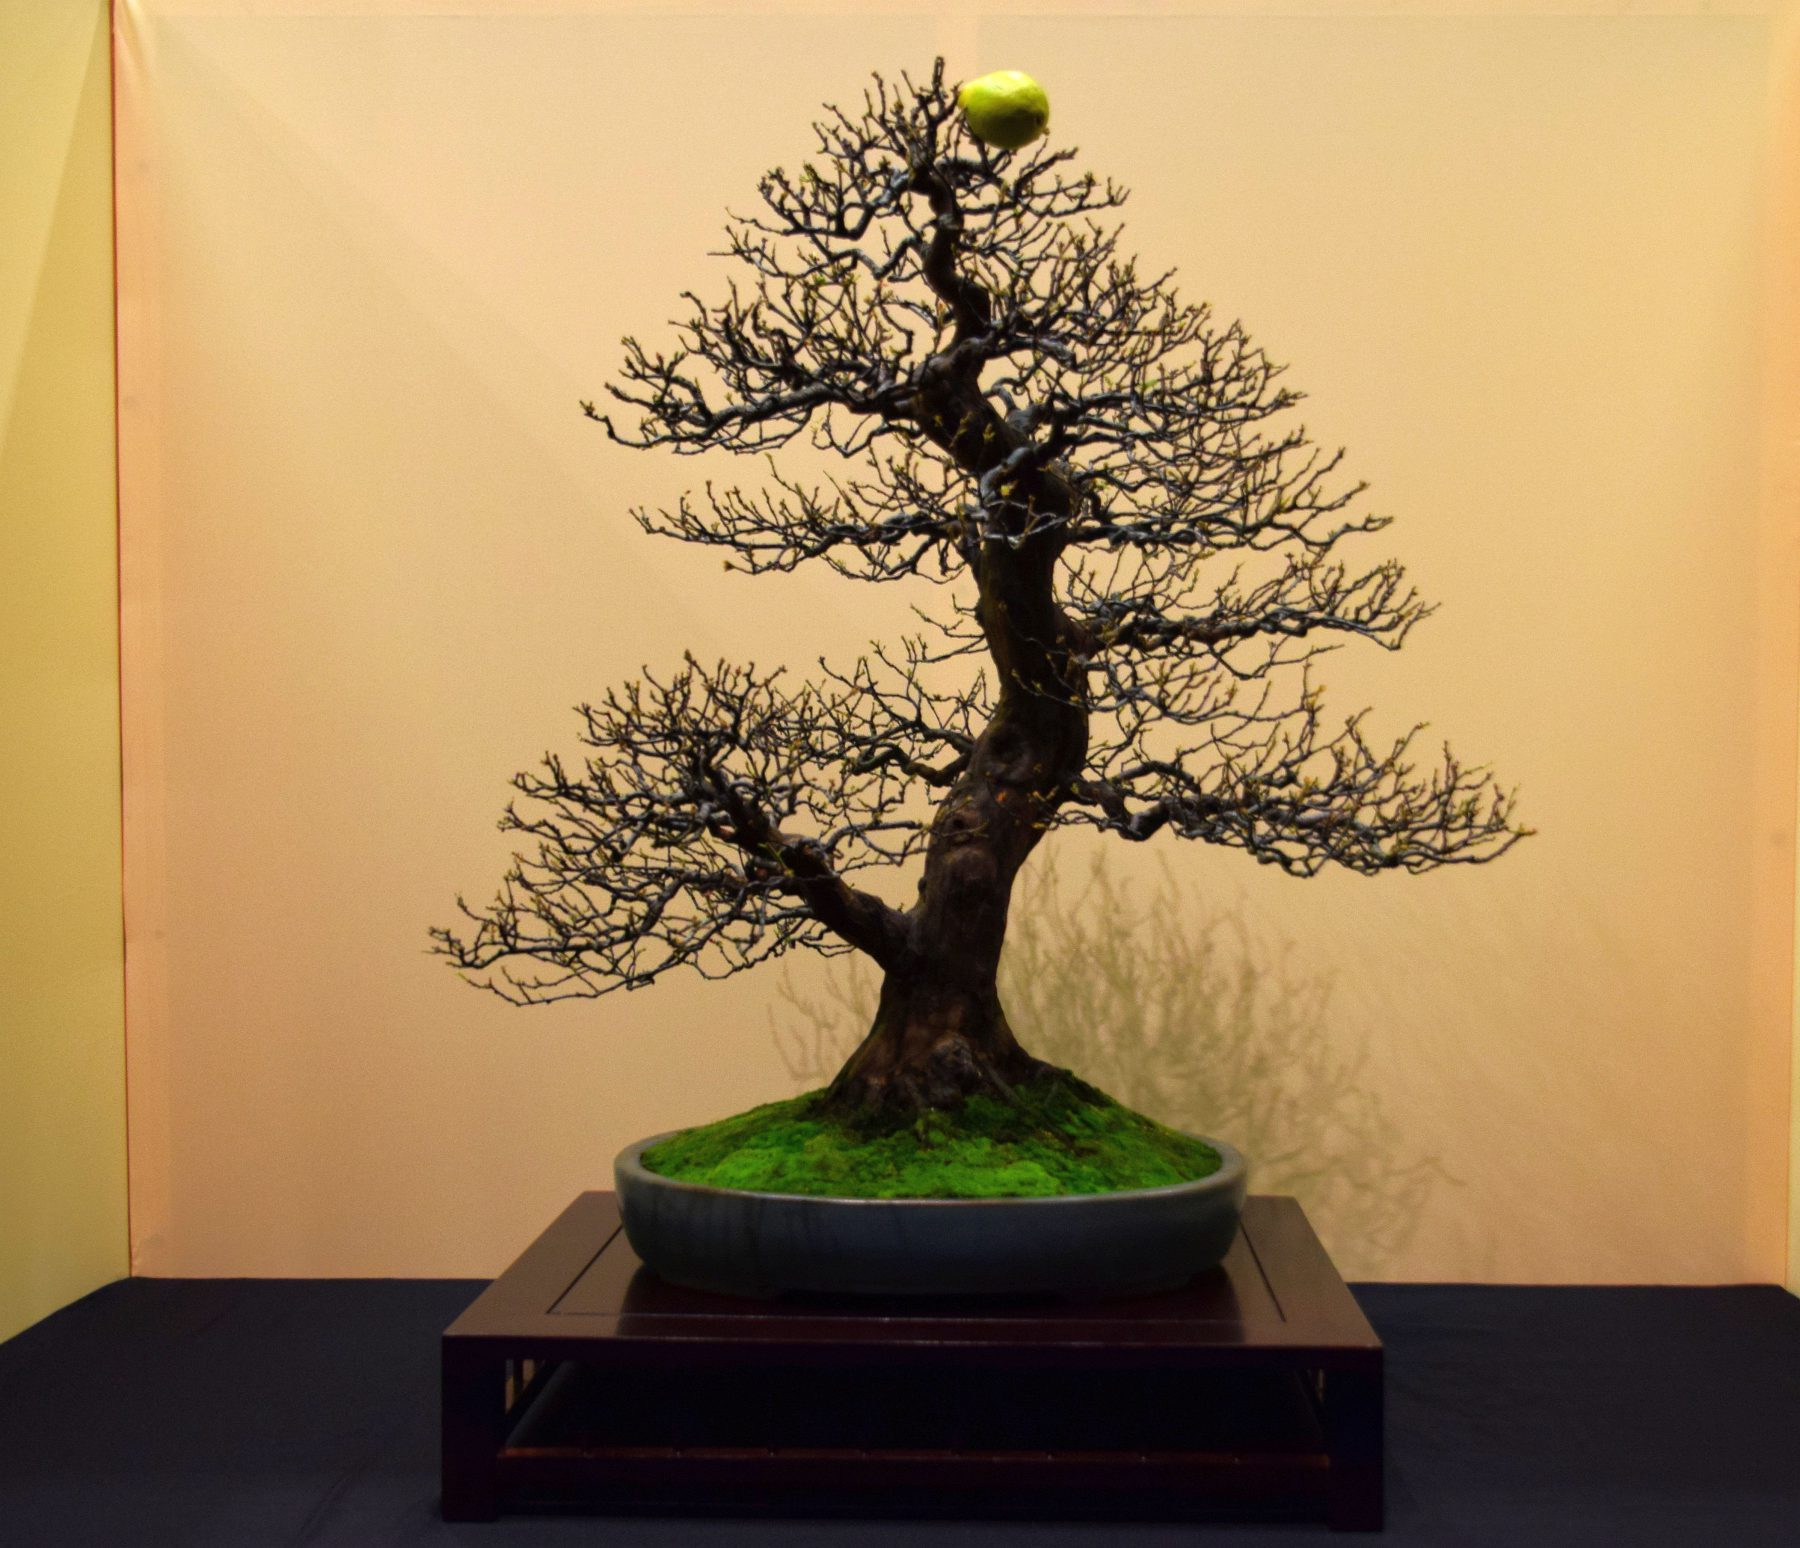 euk-bonsai-ten-2016-jp-polmans-collectie-007